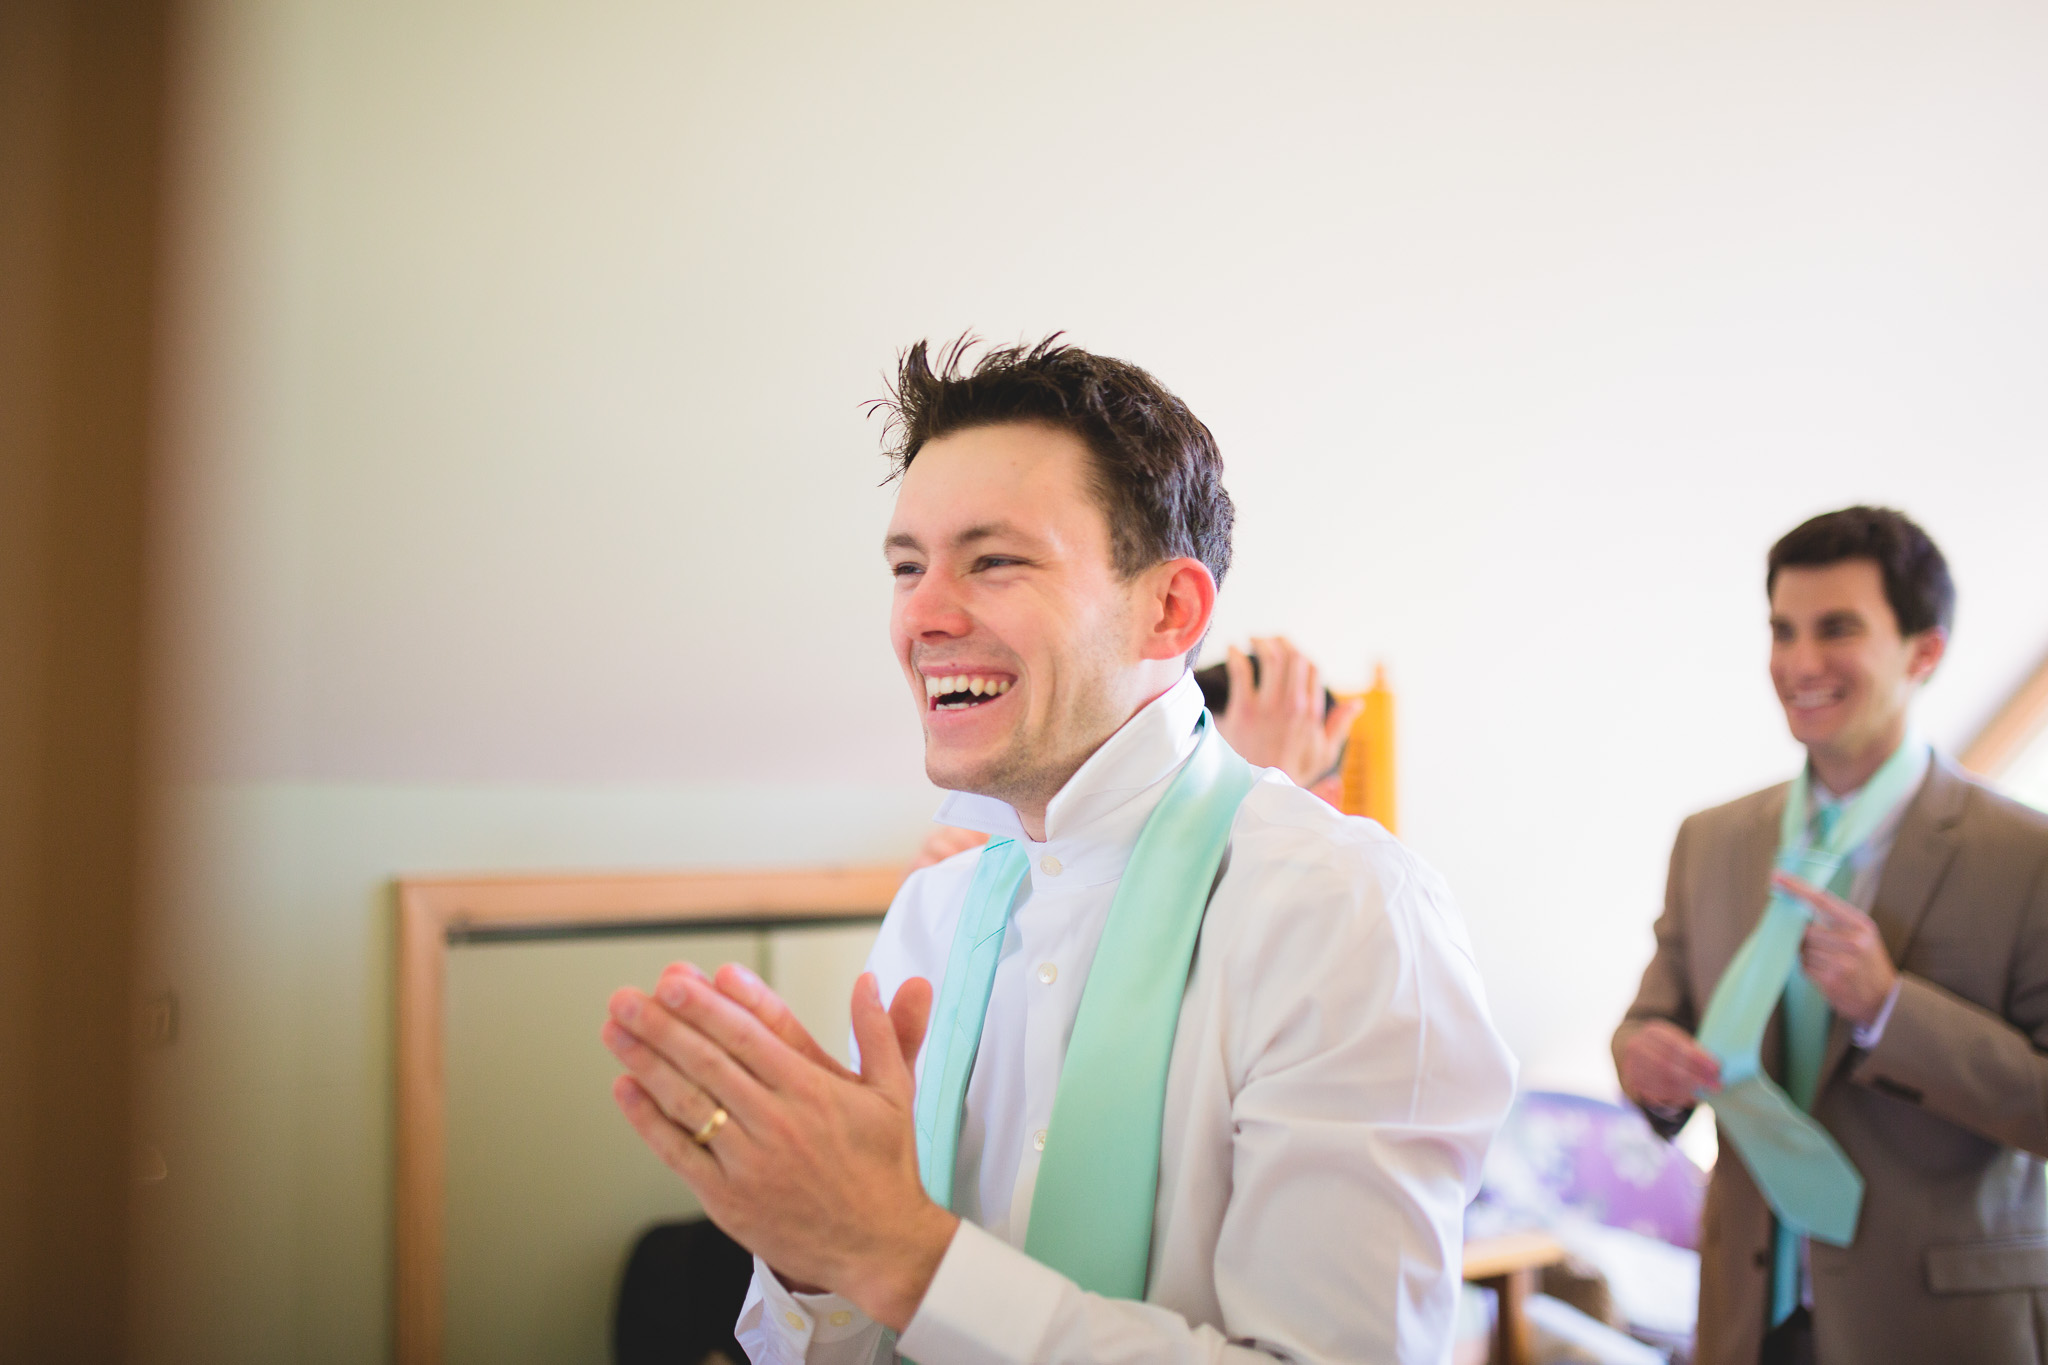 Groom-Getting-Ready-Laughing